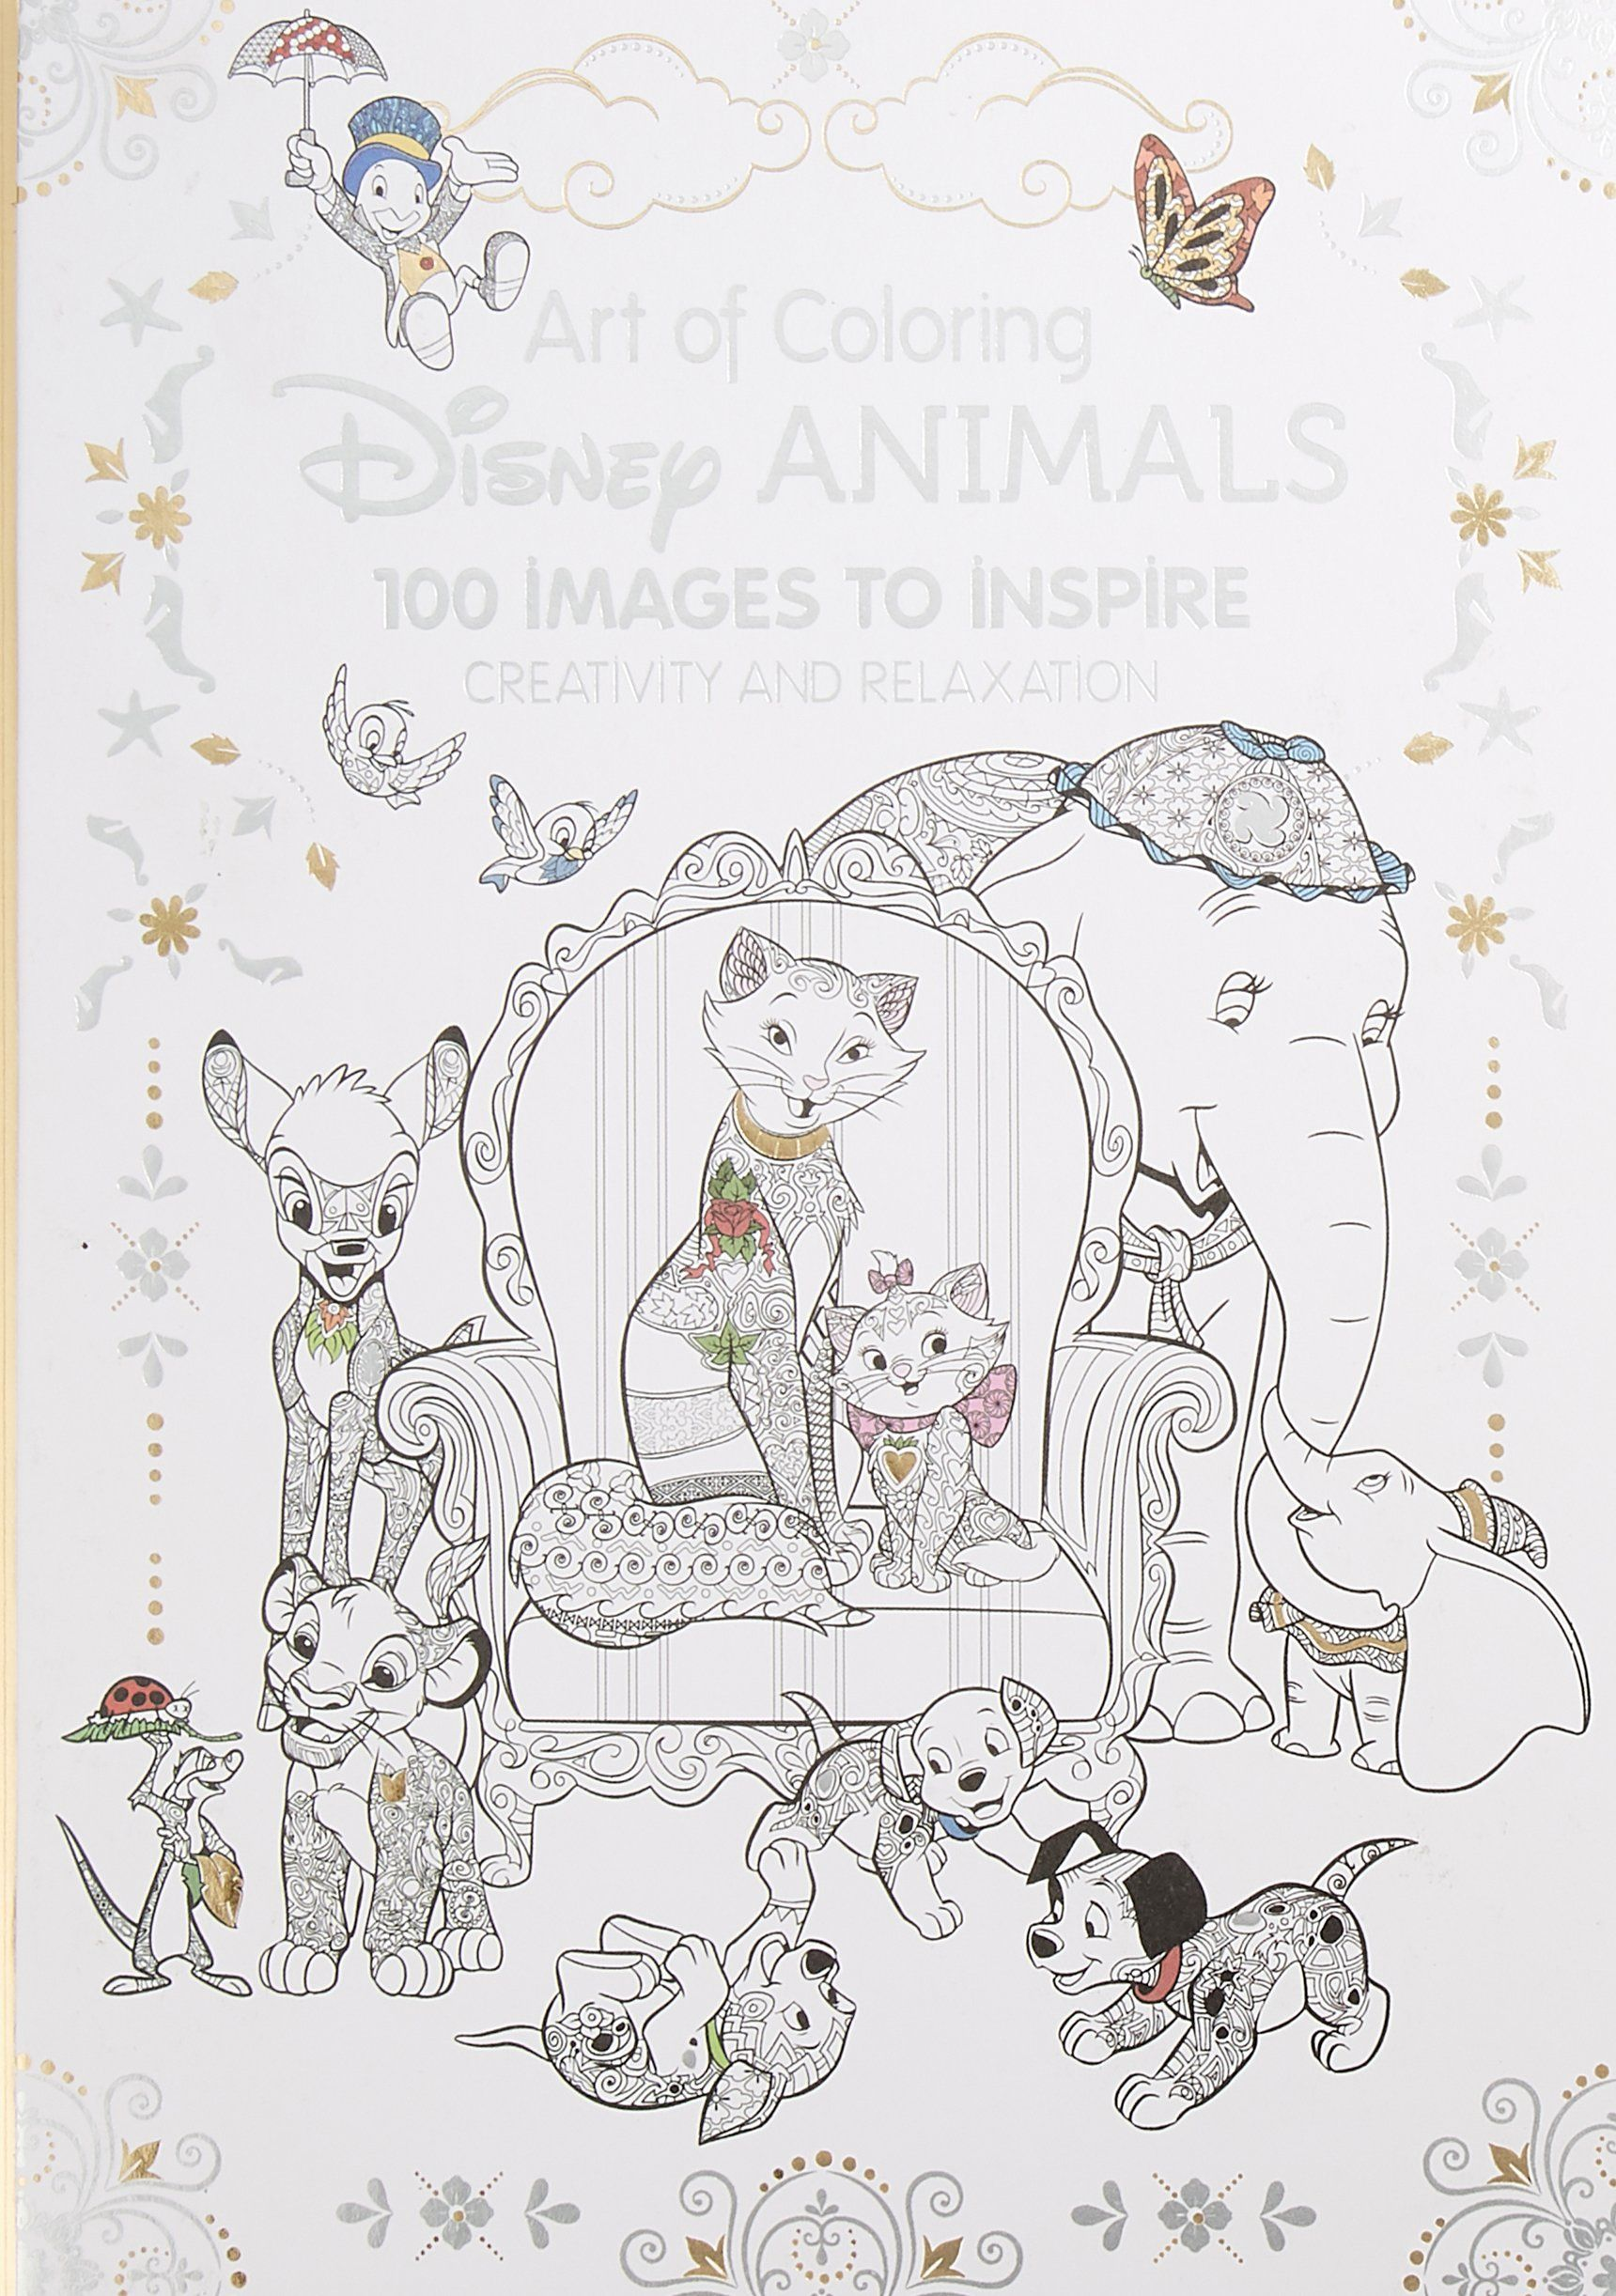 Art of Coloring Disney Animals 100 Images to Inspire